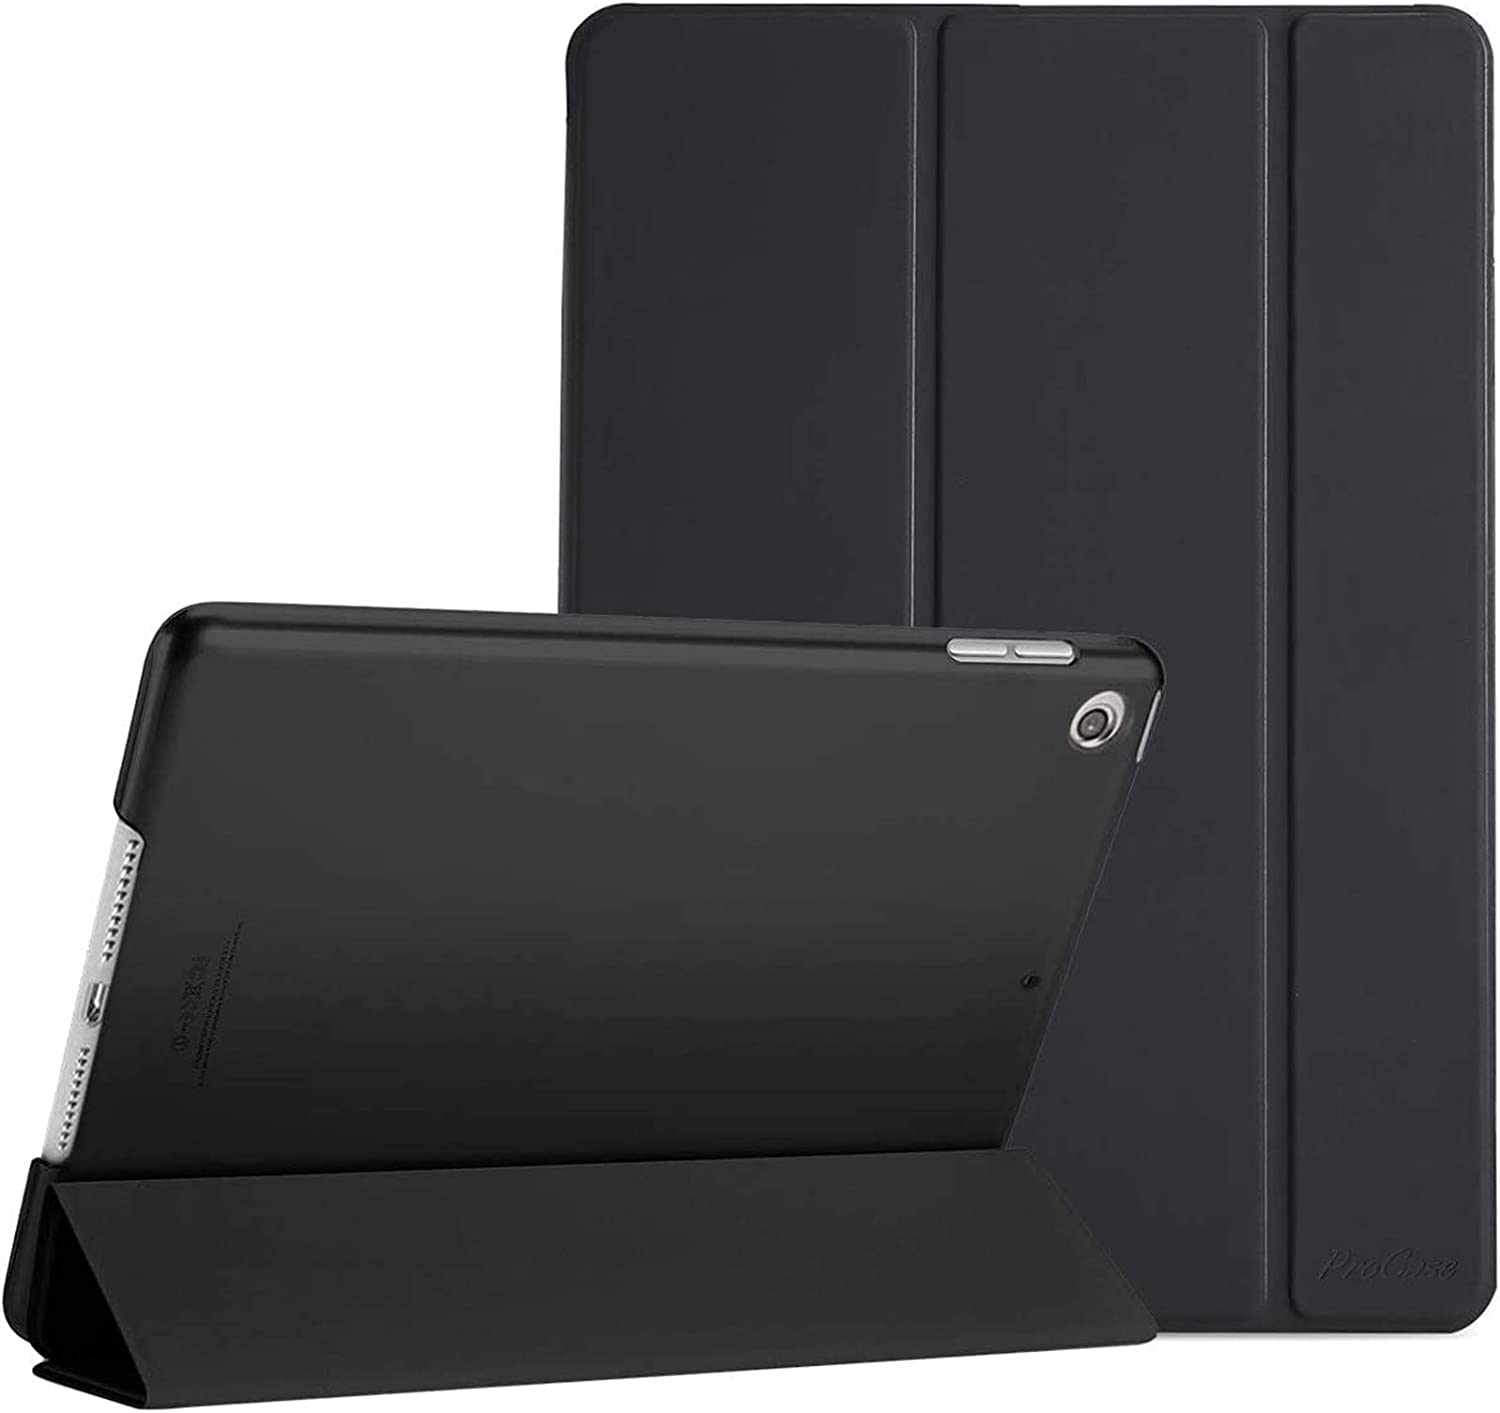 ProCase iPad 10.2 Case 2020 iPad 8th Generation / 2019 iPad 7th Gen Case, Slim Stand Hard Back Shell Protective Smart Cover Case for iPad 10.2 Inch -Black